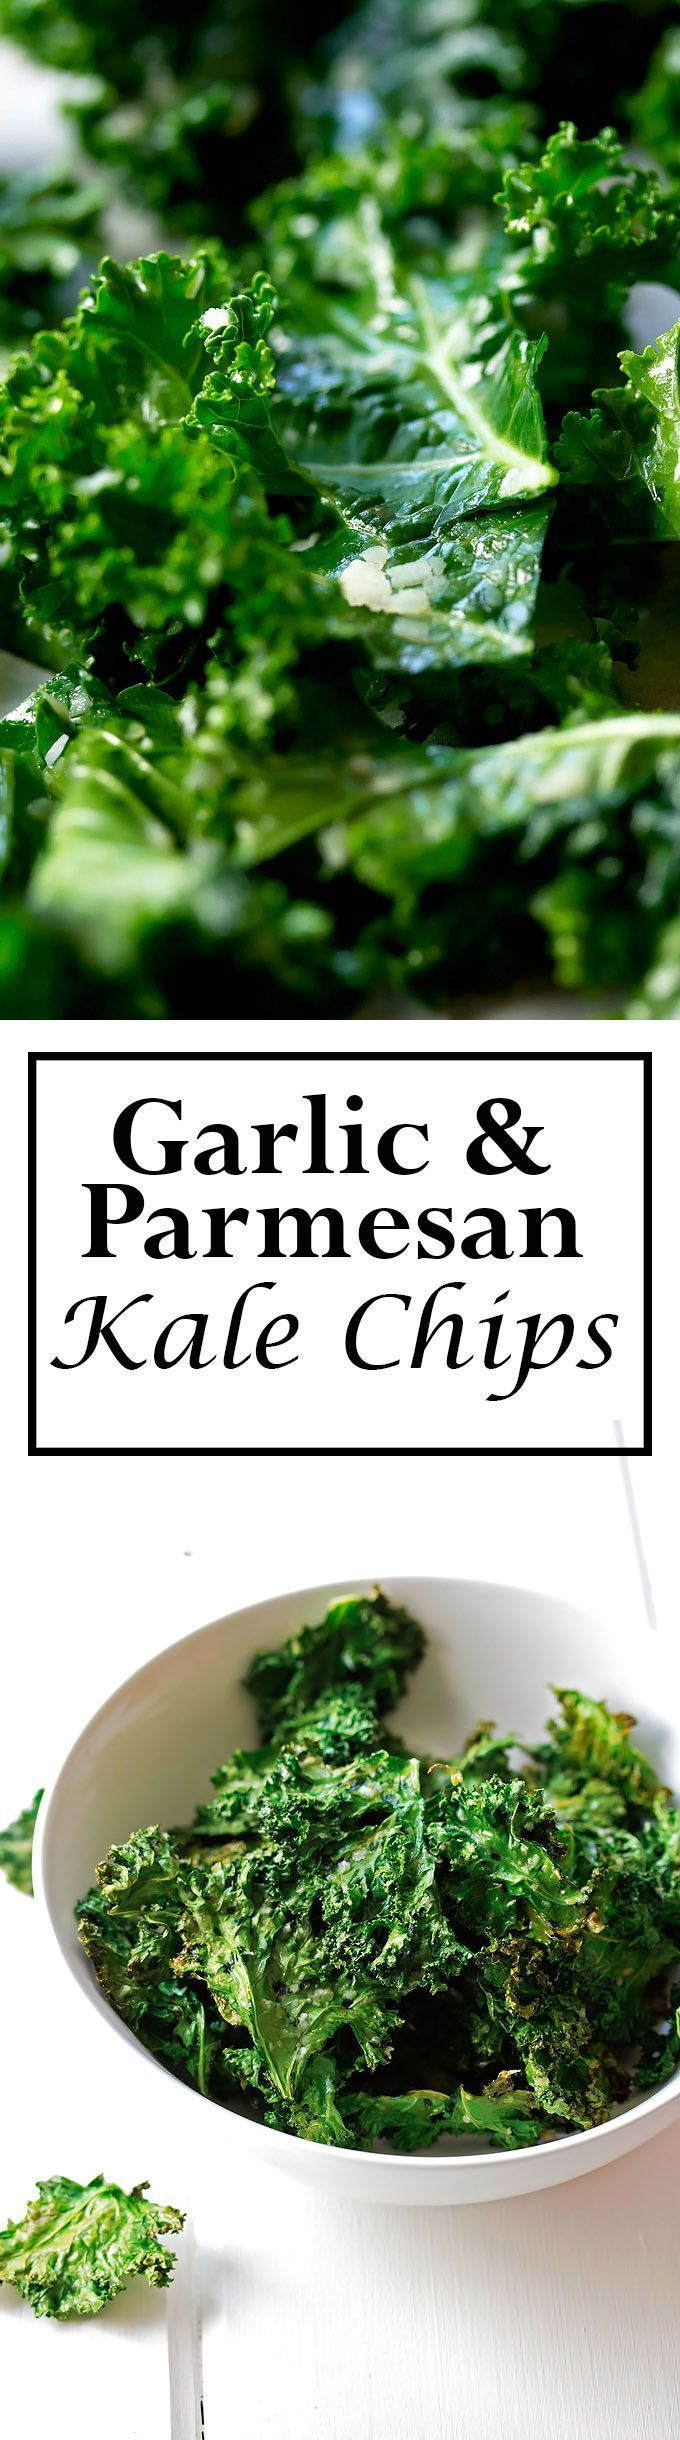 Homemade Garlic and Parmesan Kale Chips! Don't knock it until you try it.  These are ridiculously good!